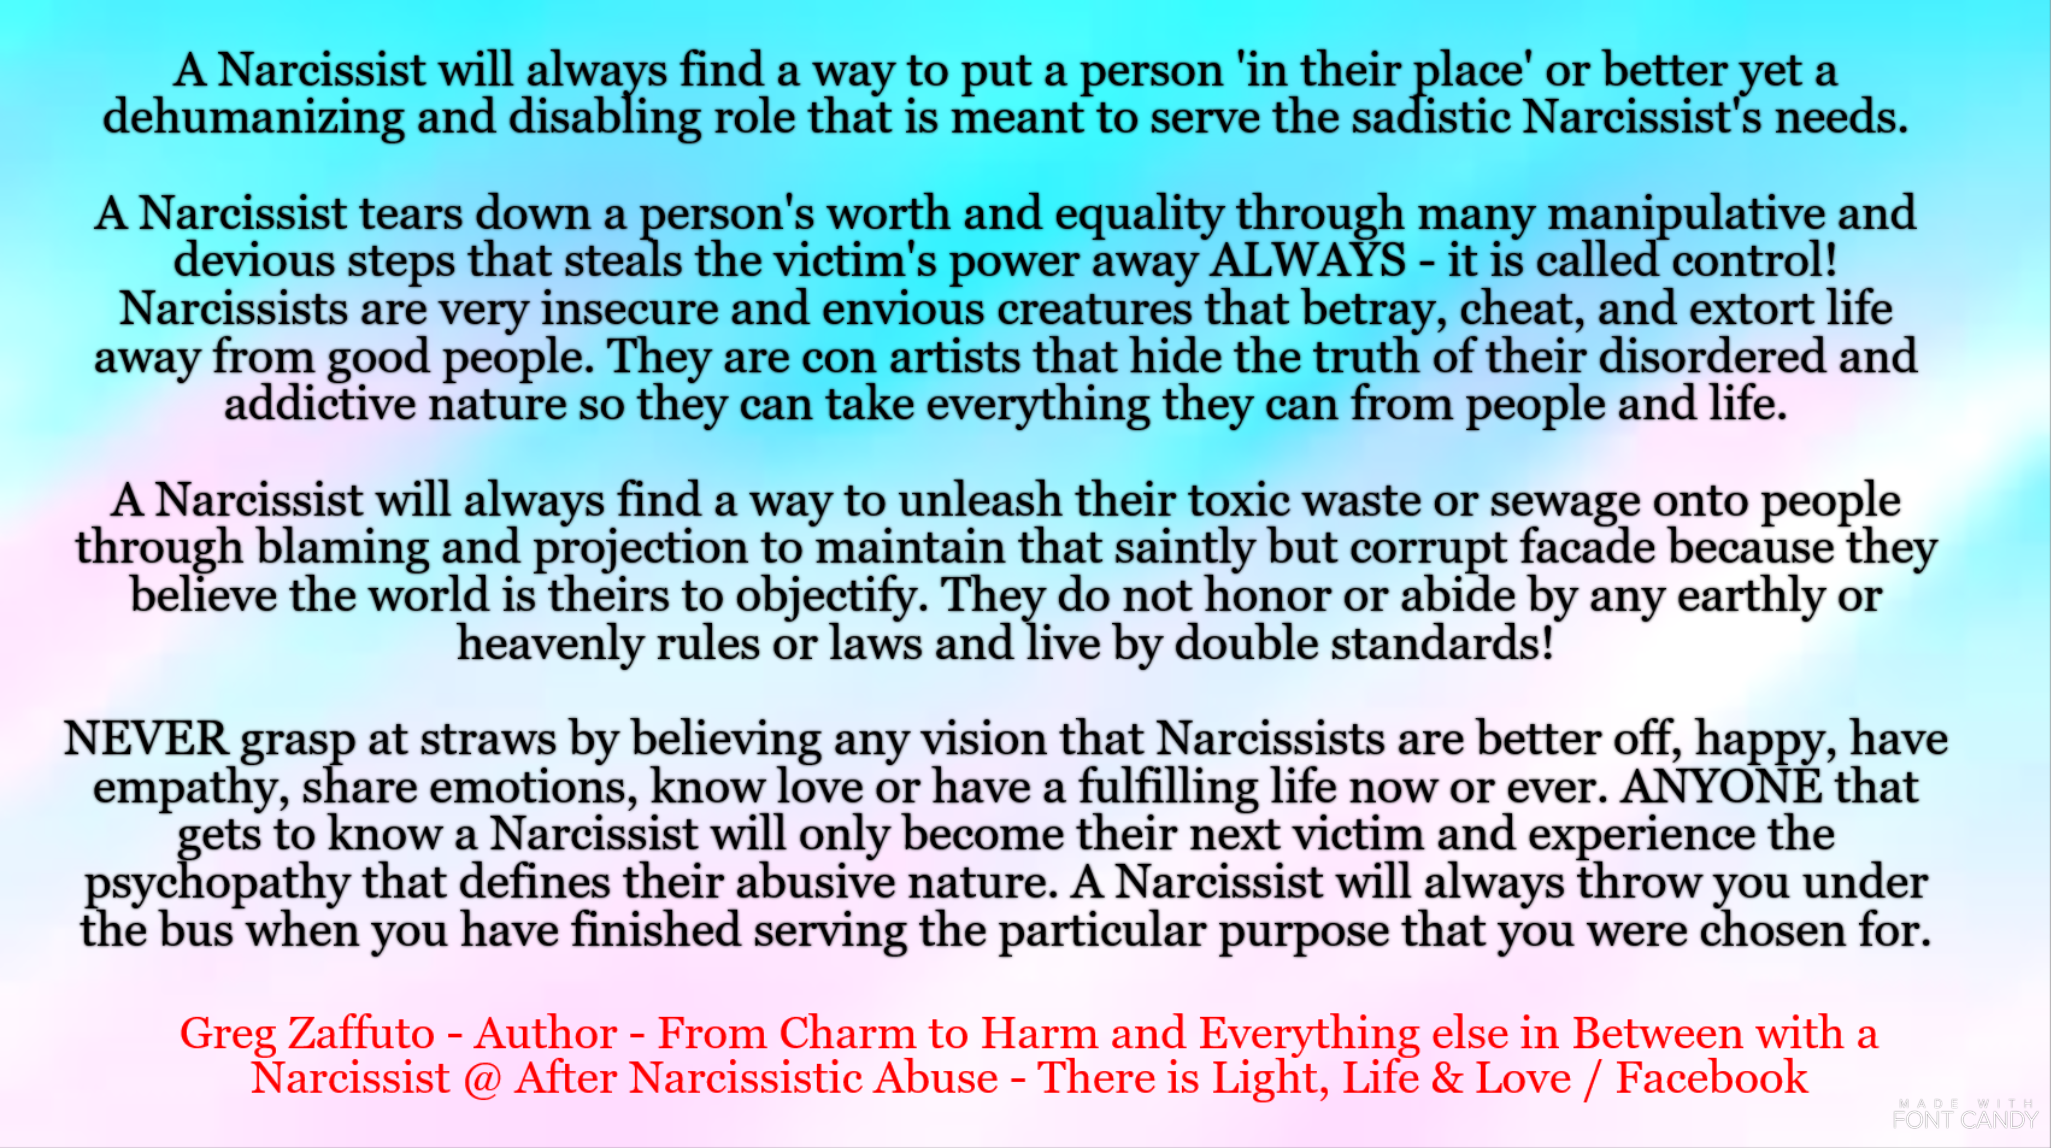 With a Narcissist you are NEVER and individual with any needs of your own – it was a role you were emotionally manipulated and conned in and out of – and you were only dehumanized, subjugated and objectified by a personality disordered person each and every time they needed you as supply.